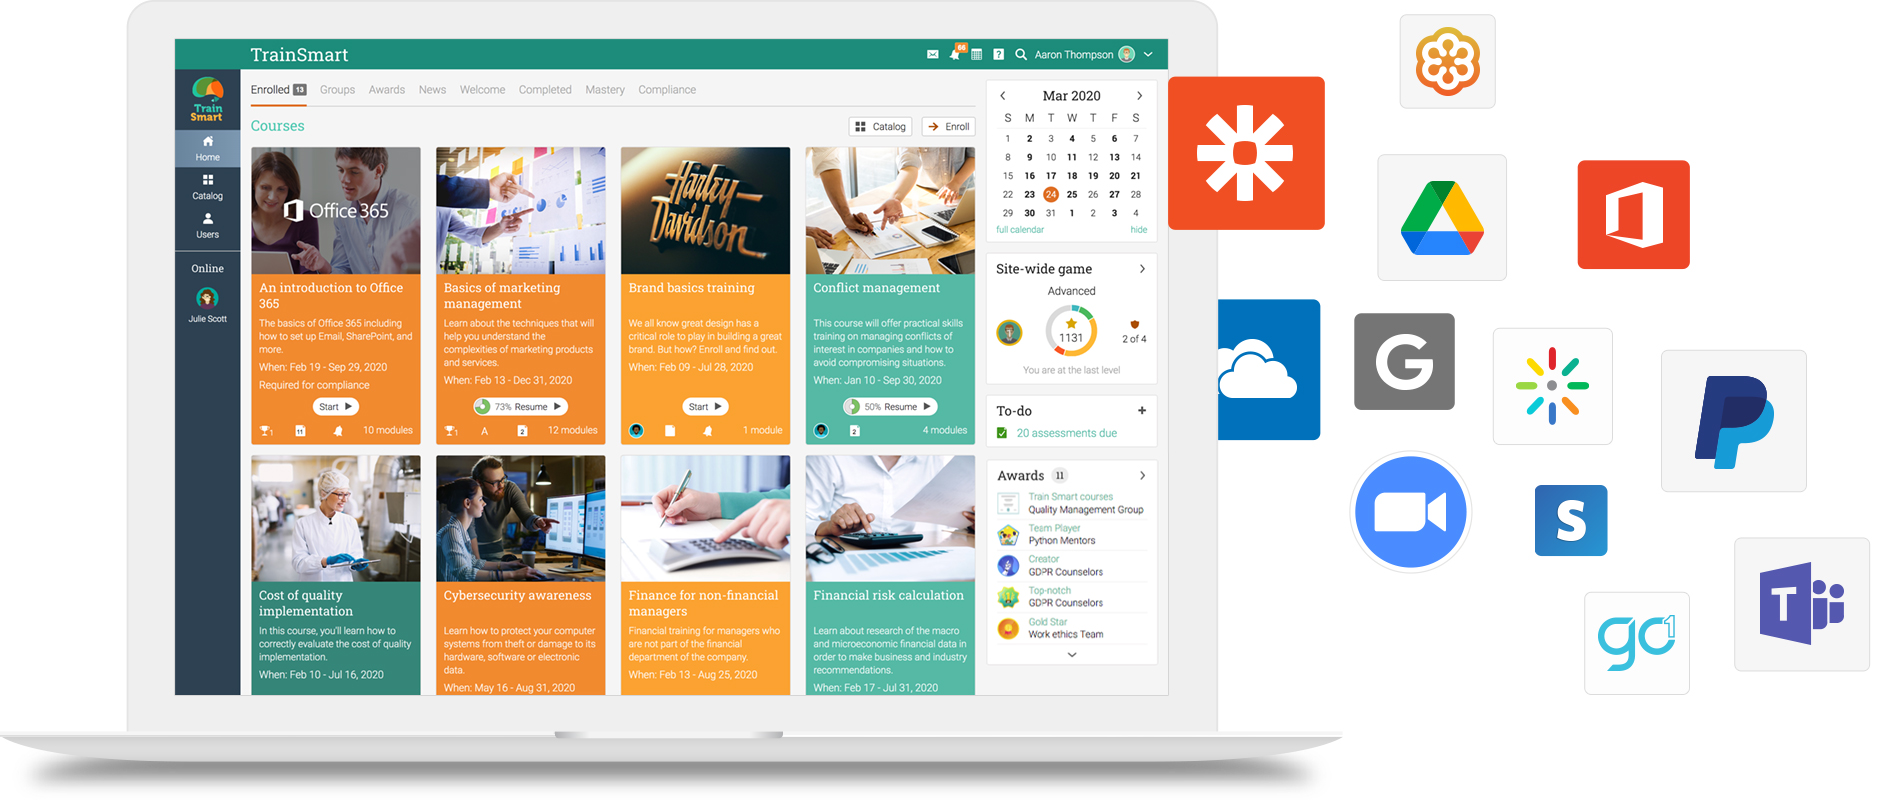 Integrate third-party tools with corporate lms » MATRIX LMS